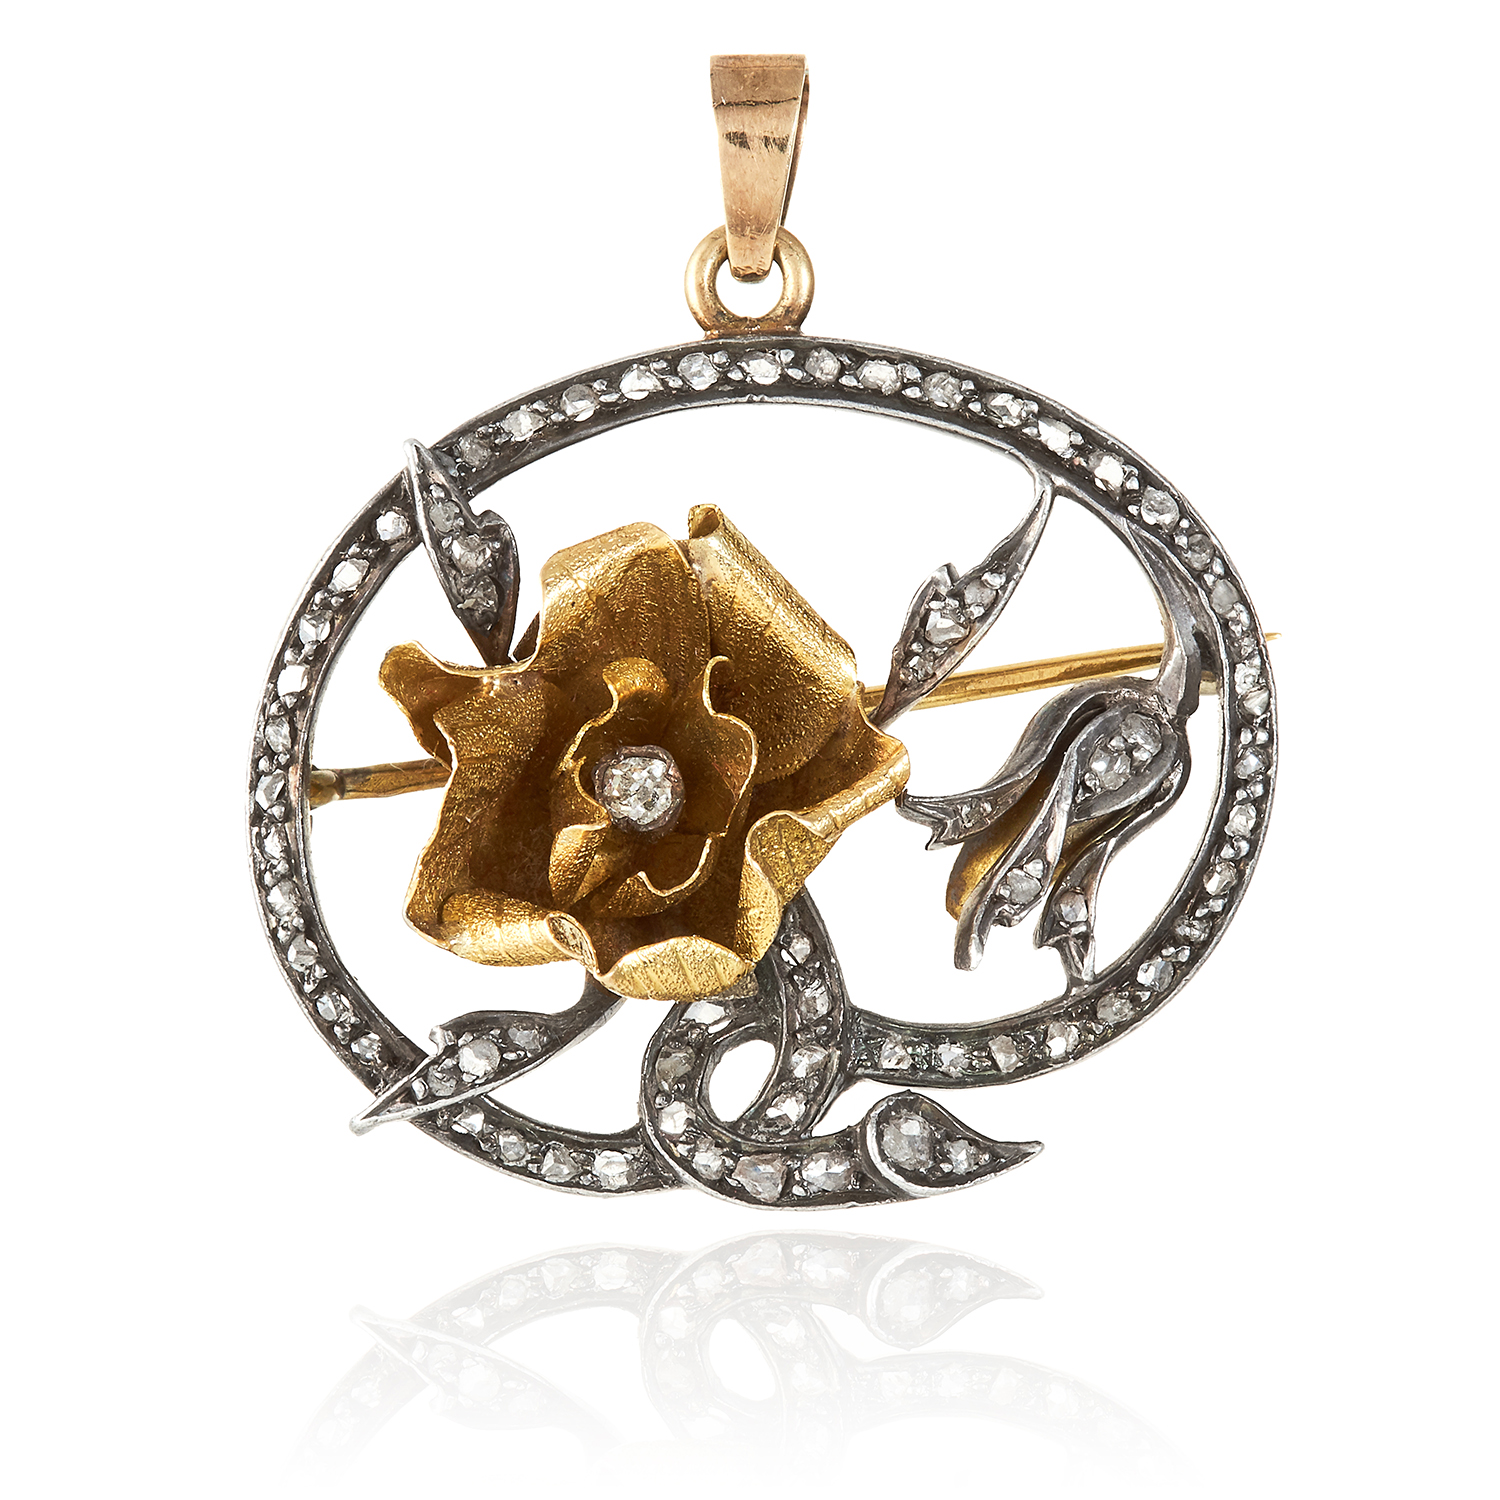 Los 357 - AN ANTIQUE DIAMOND FLOWER BROOCH, 19TH CENTURY in high carat yellow gold or silver, French marks,